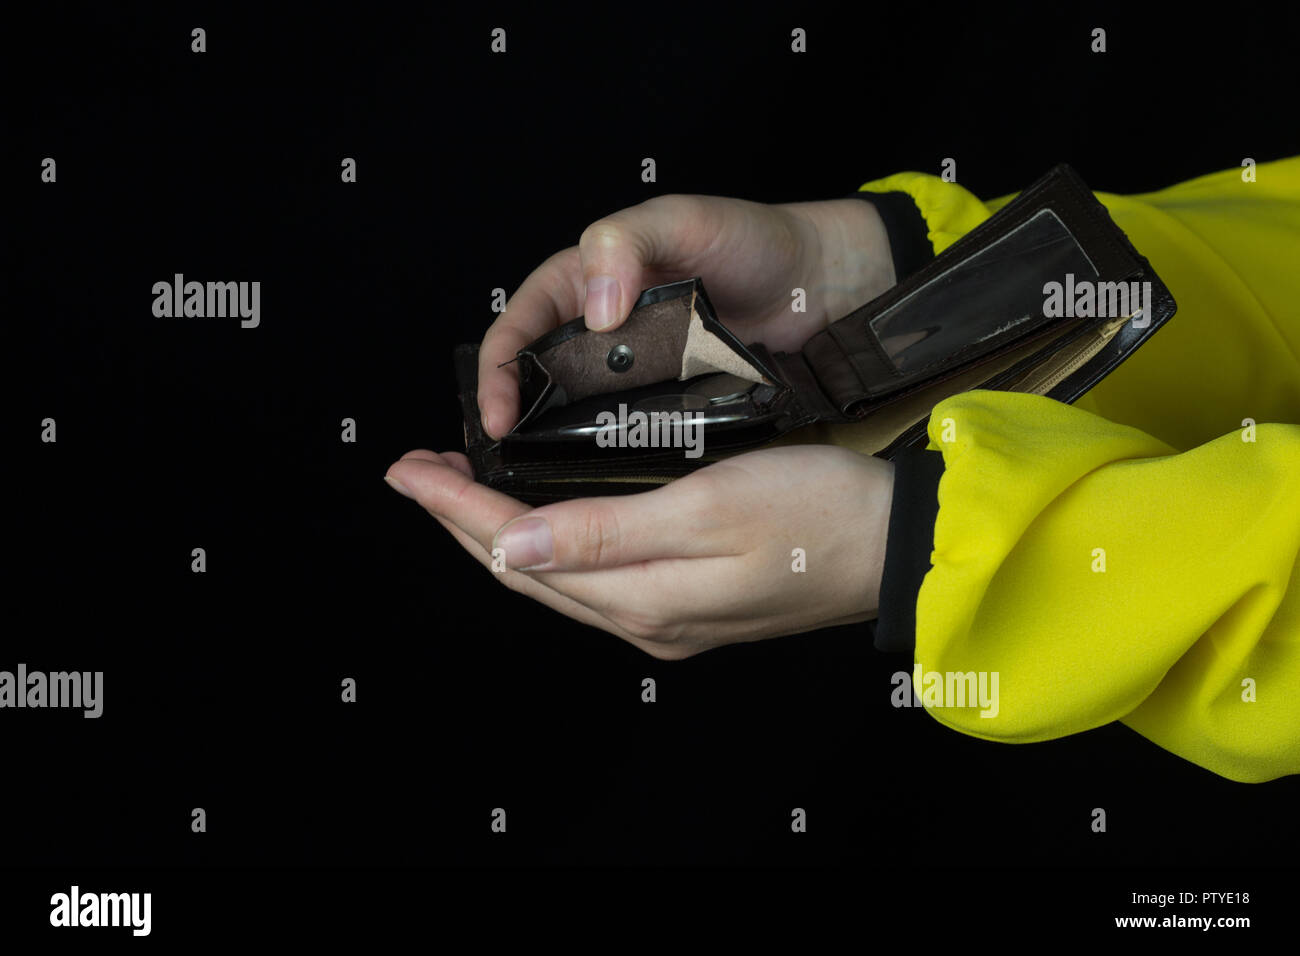 Girl pouring coins out of a purse, close-up, black background, money - Stock Image